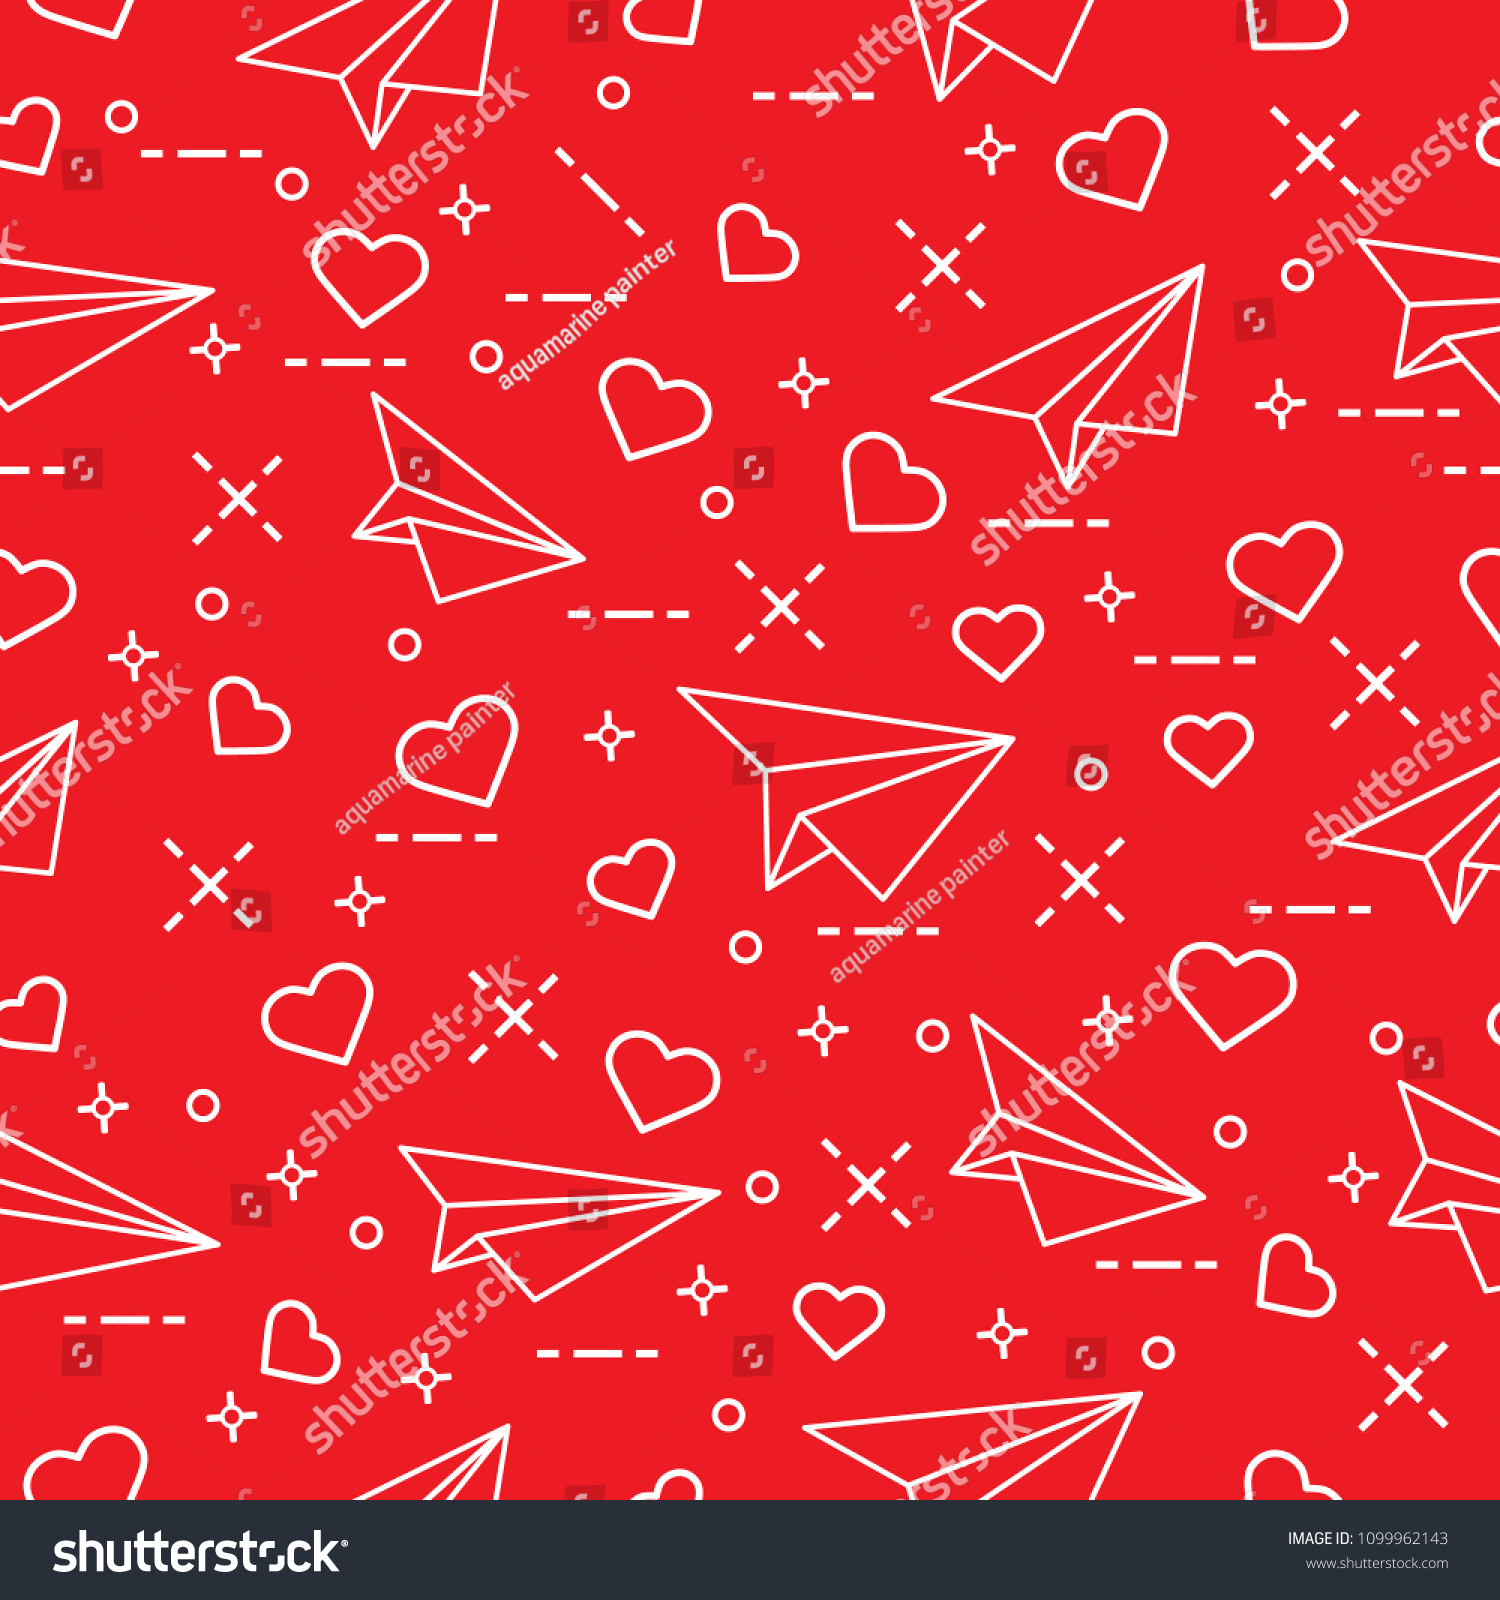 Cute Seamless Pattern With Paper Airplane And Hearts Template For